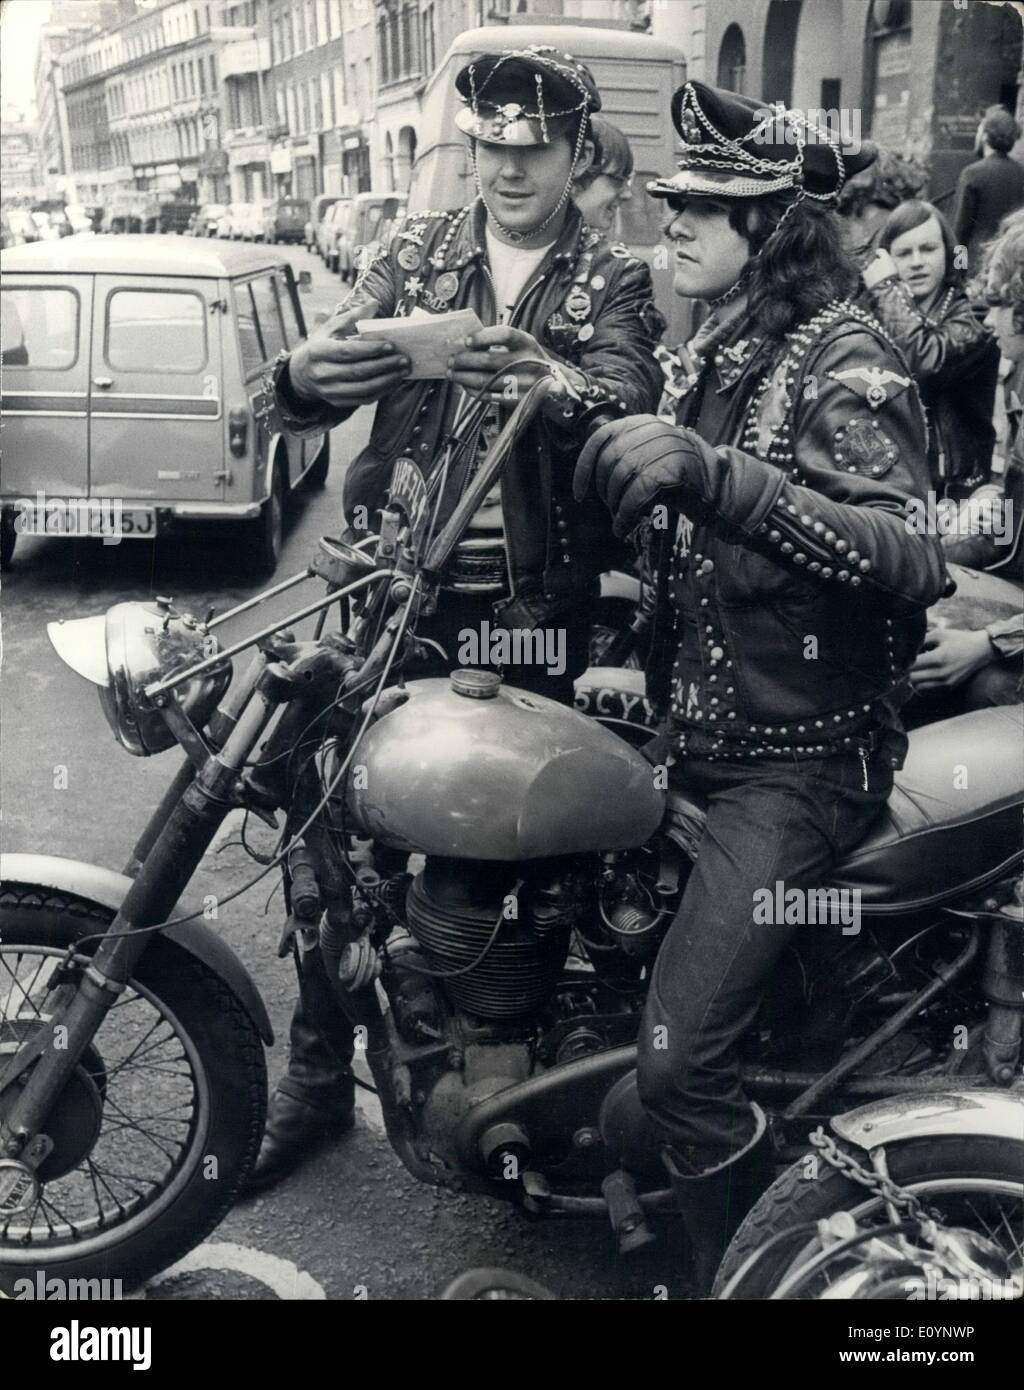 Jan. 01, 1971 - Young motor cycle gang helps Y.M.C.A. over the Postal Strike; eighteen young boys ages 16 upwards, who belong to a motor cycle gang known as the ''Devil's Henchmen'' and are members of the Islington Y.M.C.A., offered their services to the Y.M,C,A, as messengers for the entire period of the postal strike and this offer was accepted. Today thirteen members of the ''Devil's Henchmen' gang set off from 83, Endell St. London Central Y.M.C.A. and headquarters of the National Council of YMCA's to deliver YMCA mail throughout the Greater London area - Stock Image